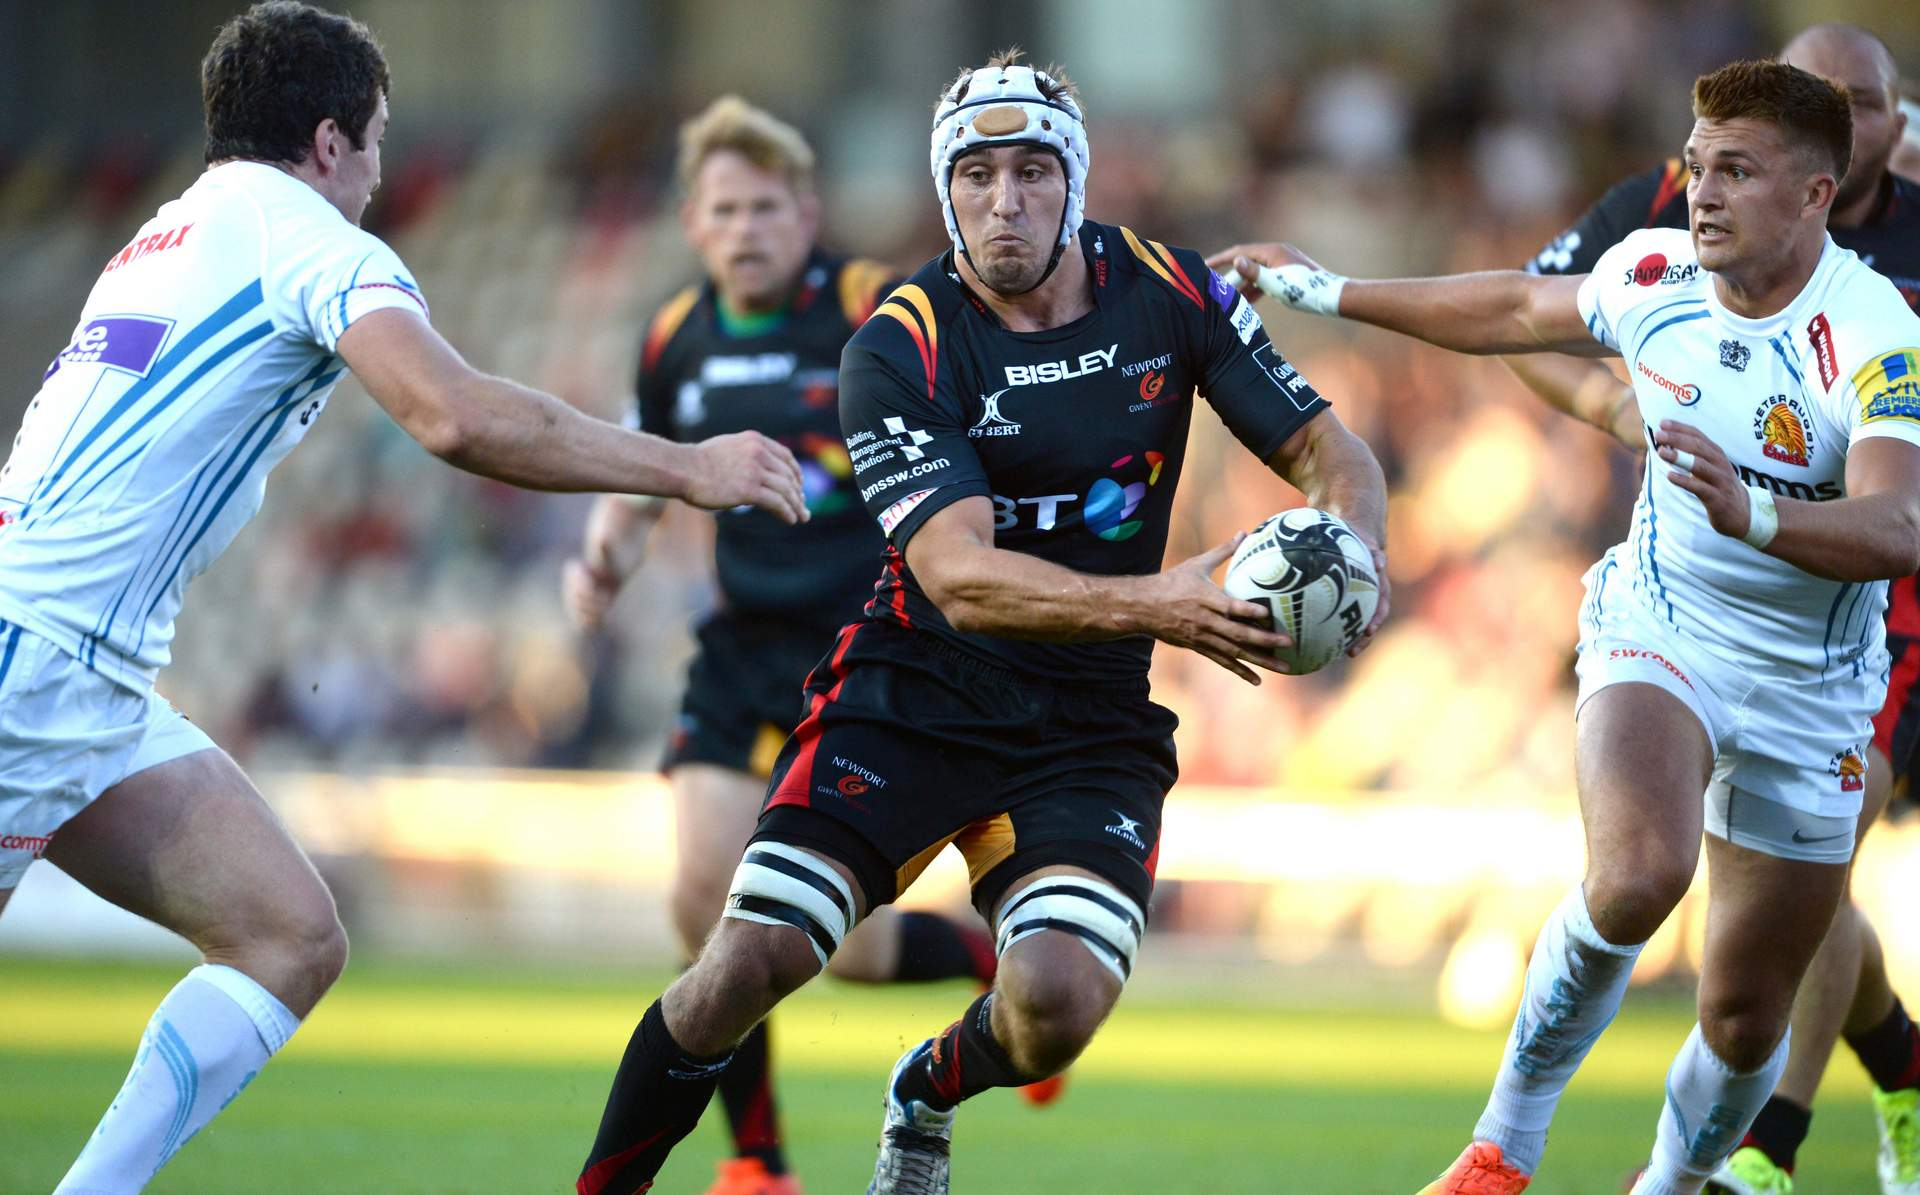 Dragons edged out by powerful Chiefs